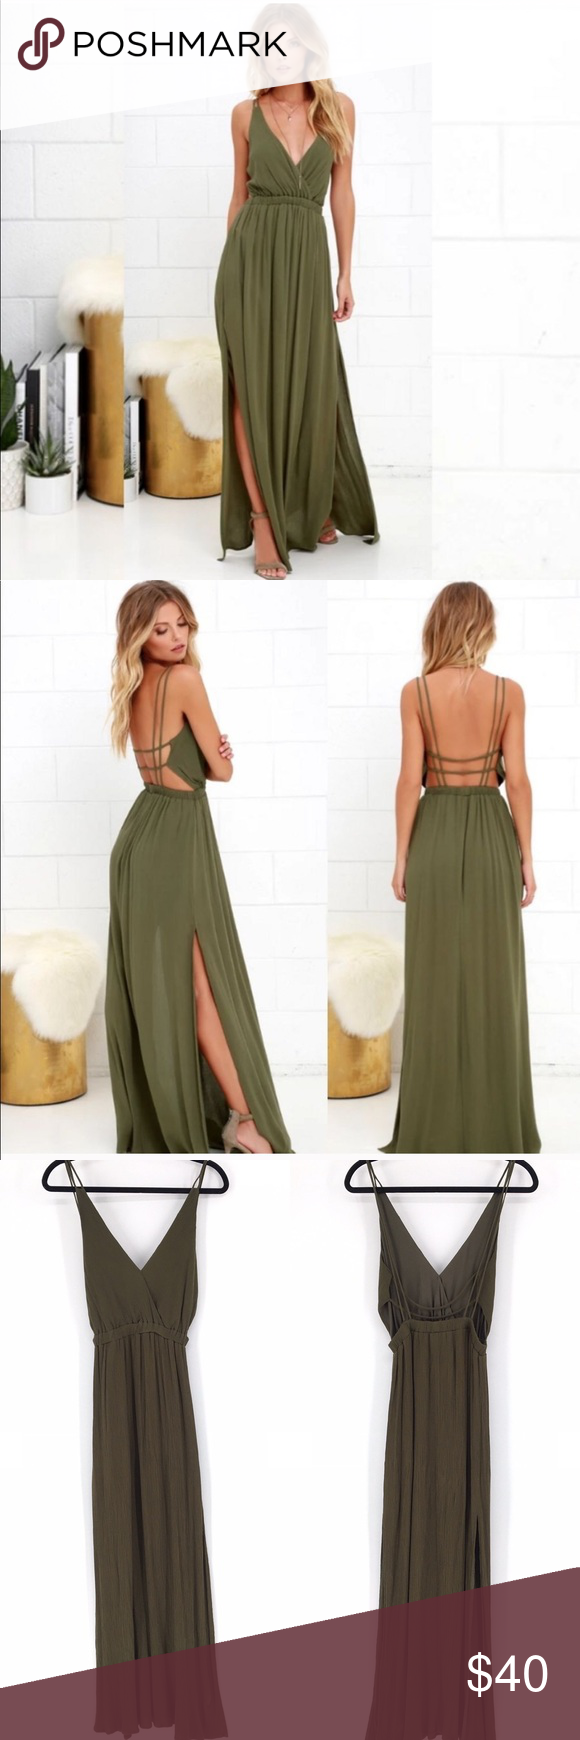 Lulu's Lost in Paradise Olive Green Maxi Dress Lulu's Lost in Paradise Olive Green Maxi Dress - Size Small - Very good condition. No flaws to note - 100% Rayon Self, 100% polyester lining - Hand wash - Smoke free / pet friendly home  #0326 Lulu's Dresses Maxi